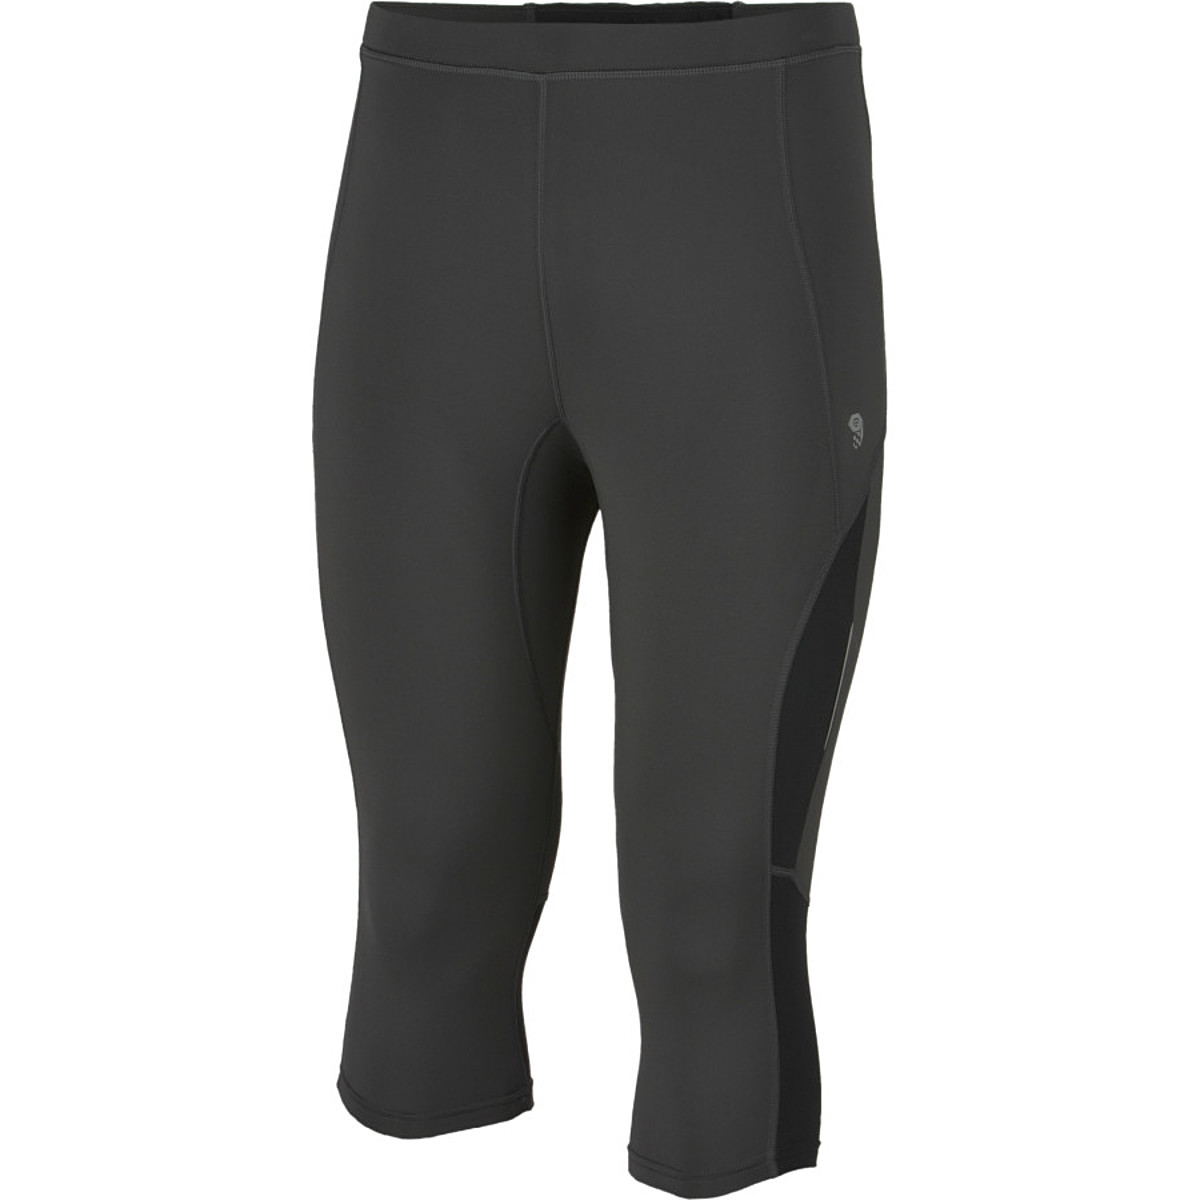 Mountain Hardwear Mighty Power 3/4 Tight